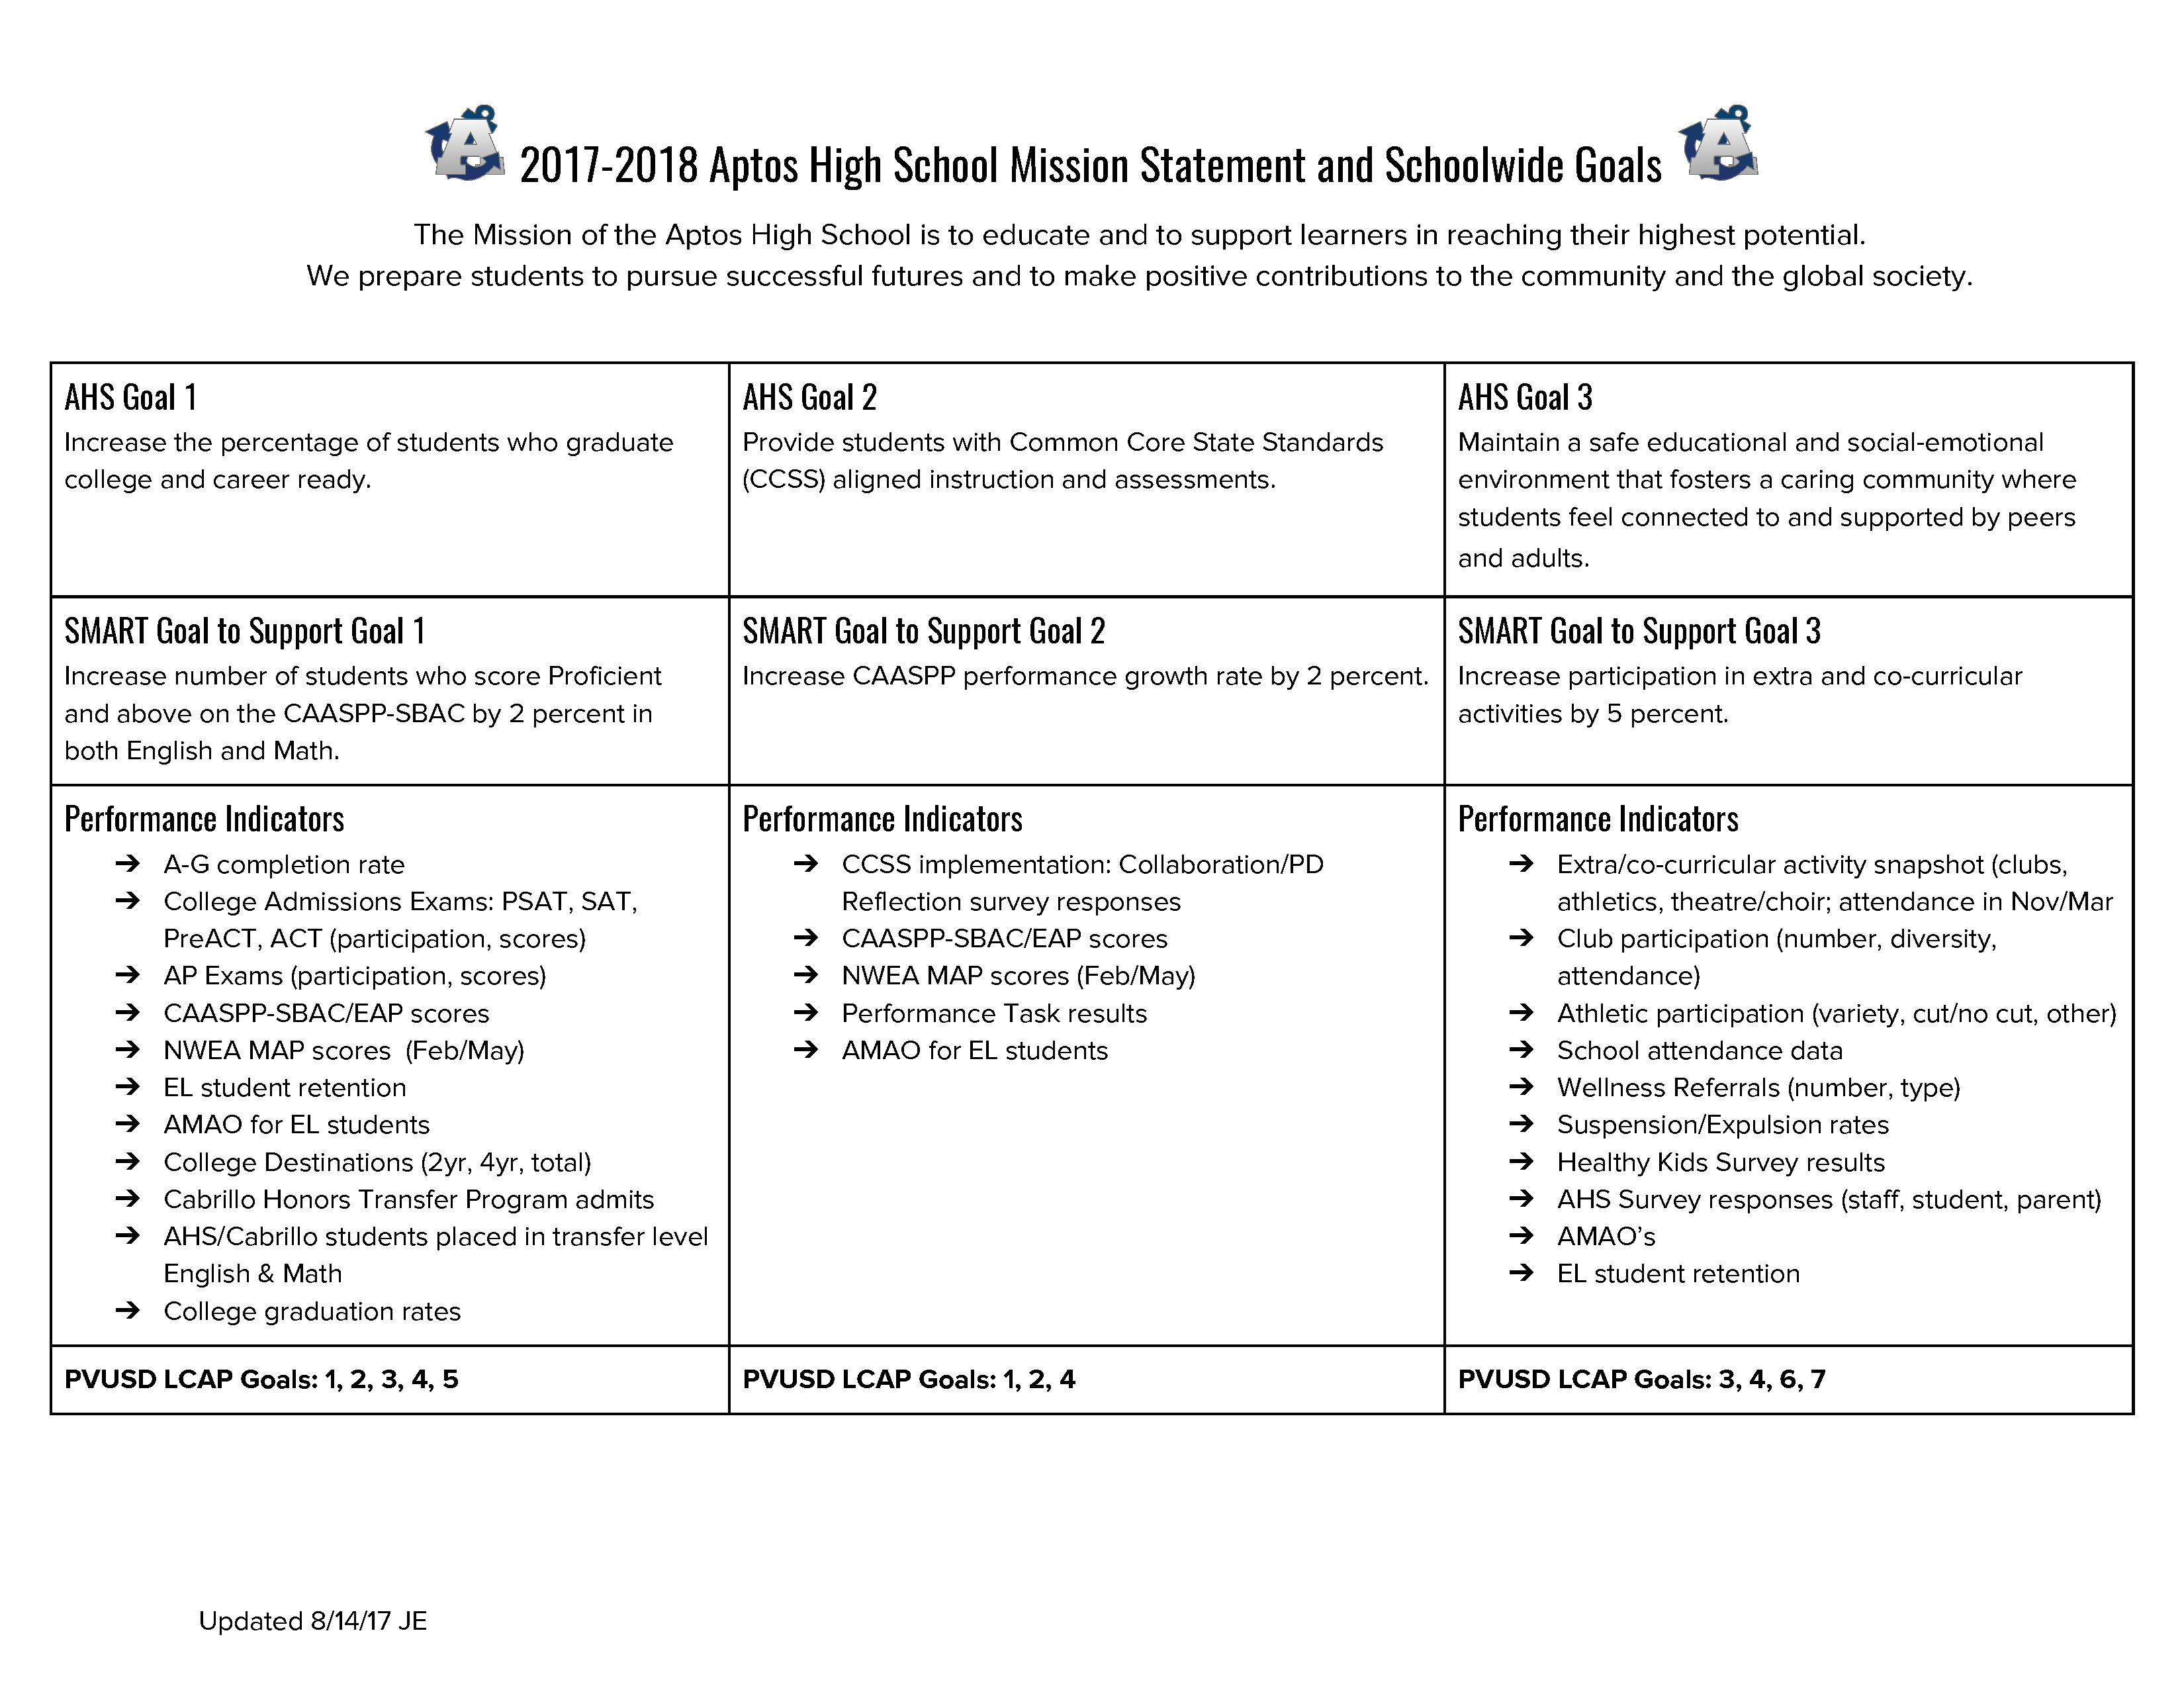 2017-2018 AHS Plan on a Page.png